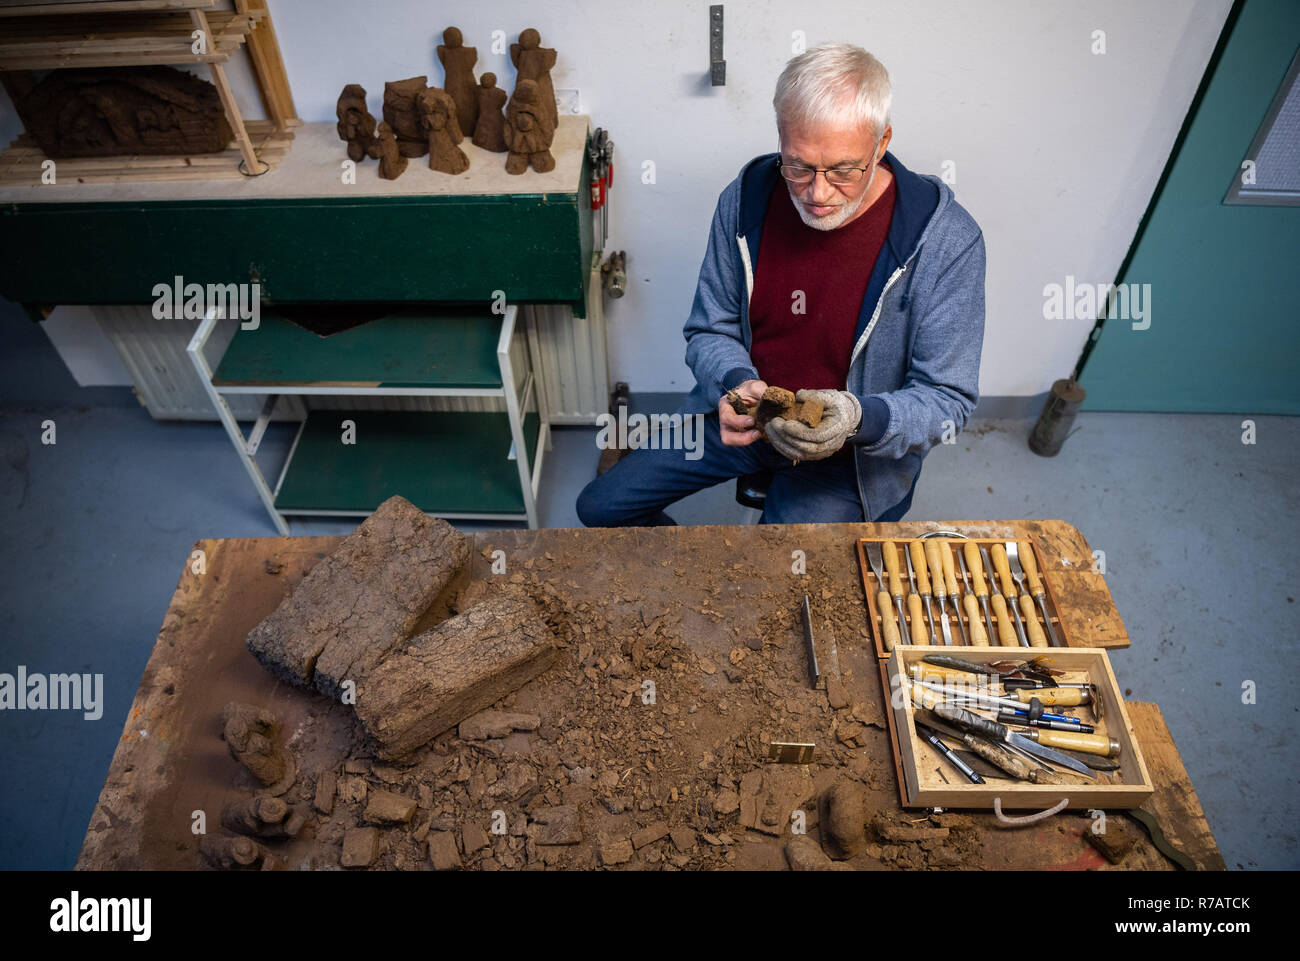 Saterland, Germany. 22nd Nov, 2018. Karl-Heinz Brinkmann carves a Christmas figure from peat in his home workshop. The 64 year old Saterland artist works with many materials. But the dried white peat is special: it is 2000 years old. (to dpa '2000 years old: Christmas cribs from peat' from 09.12.2018) Credit: Mohssen Assanimoghaddam/dpa/Alamy Live News - Stock Image